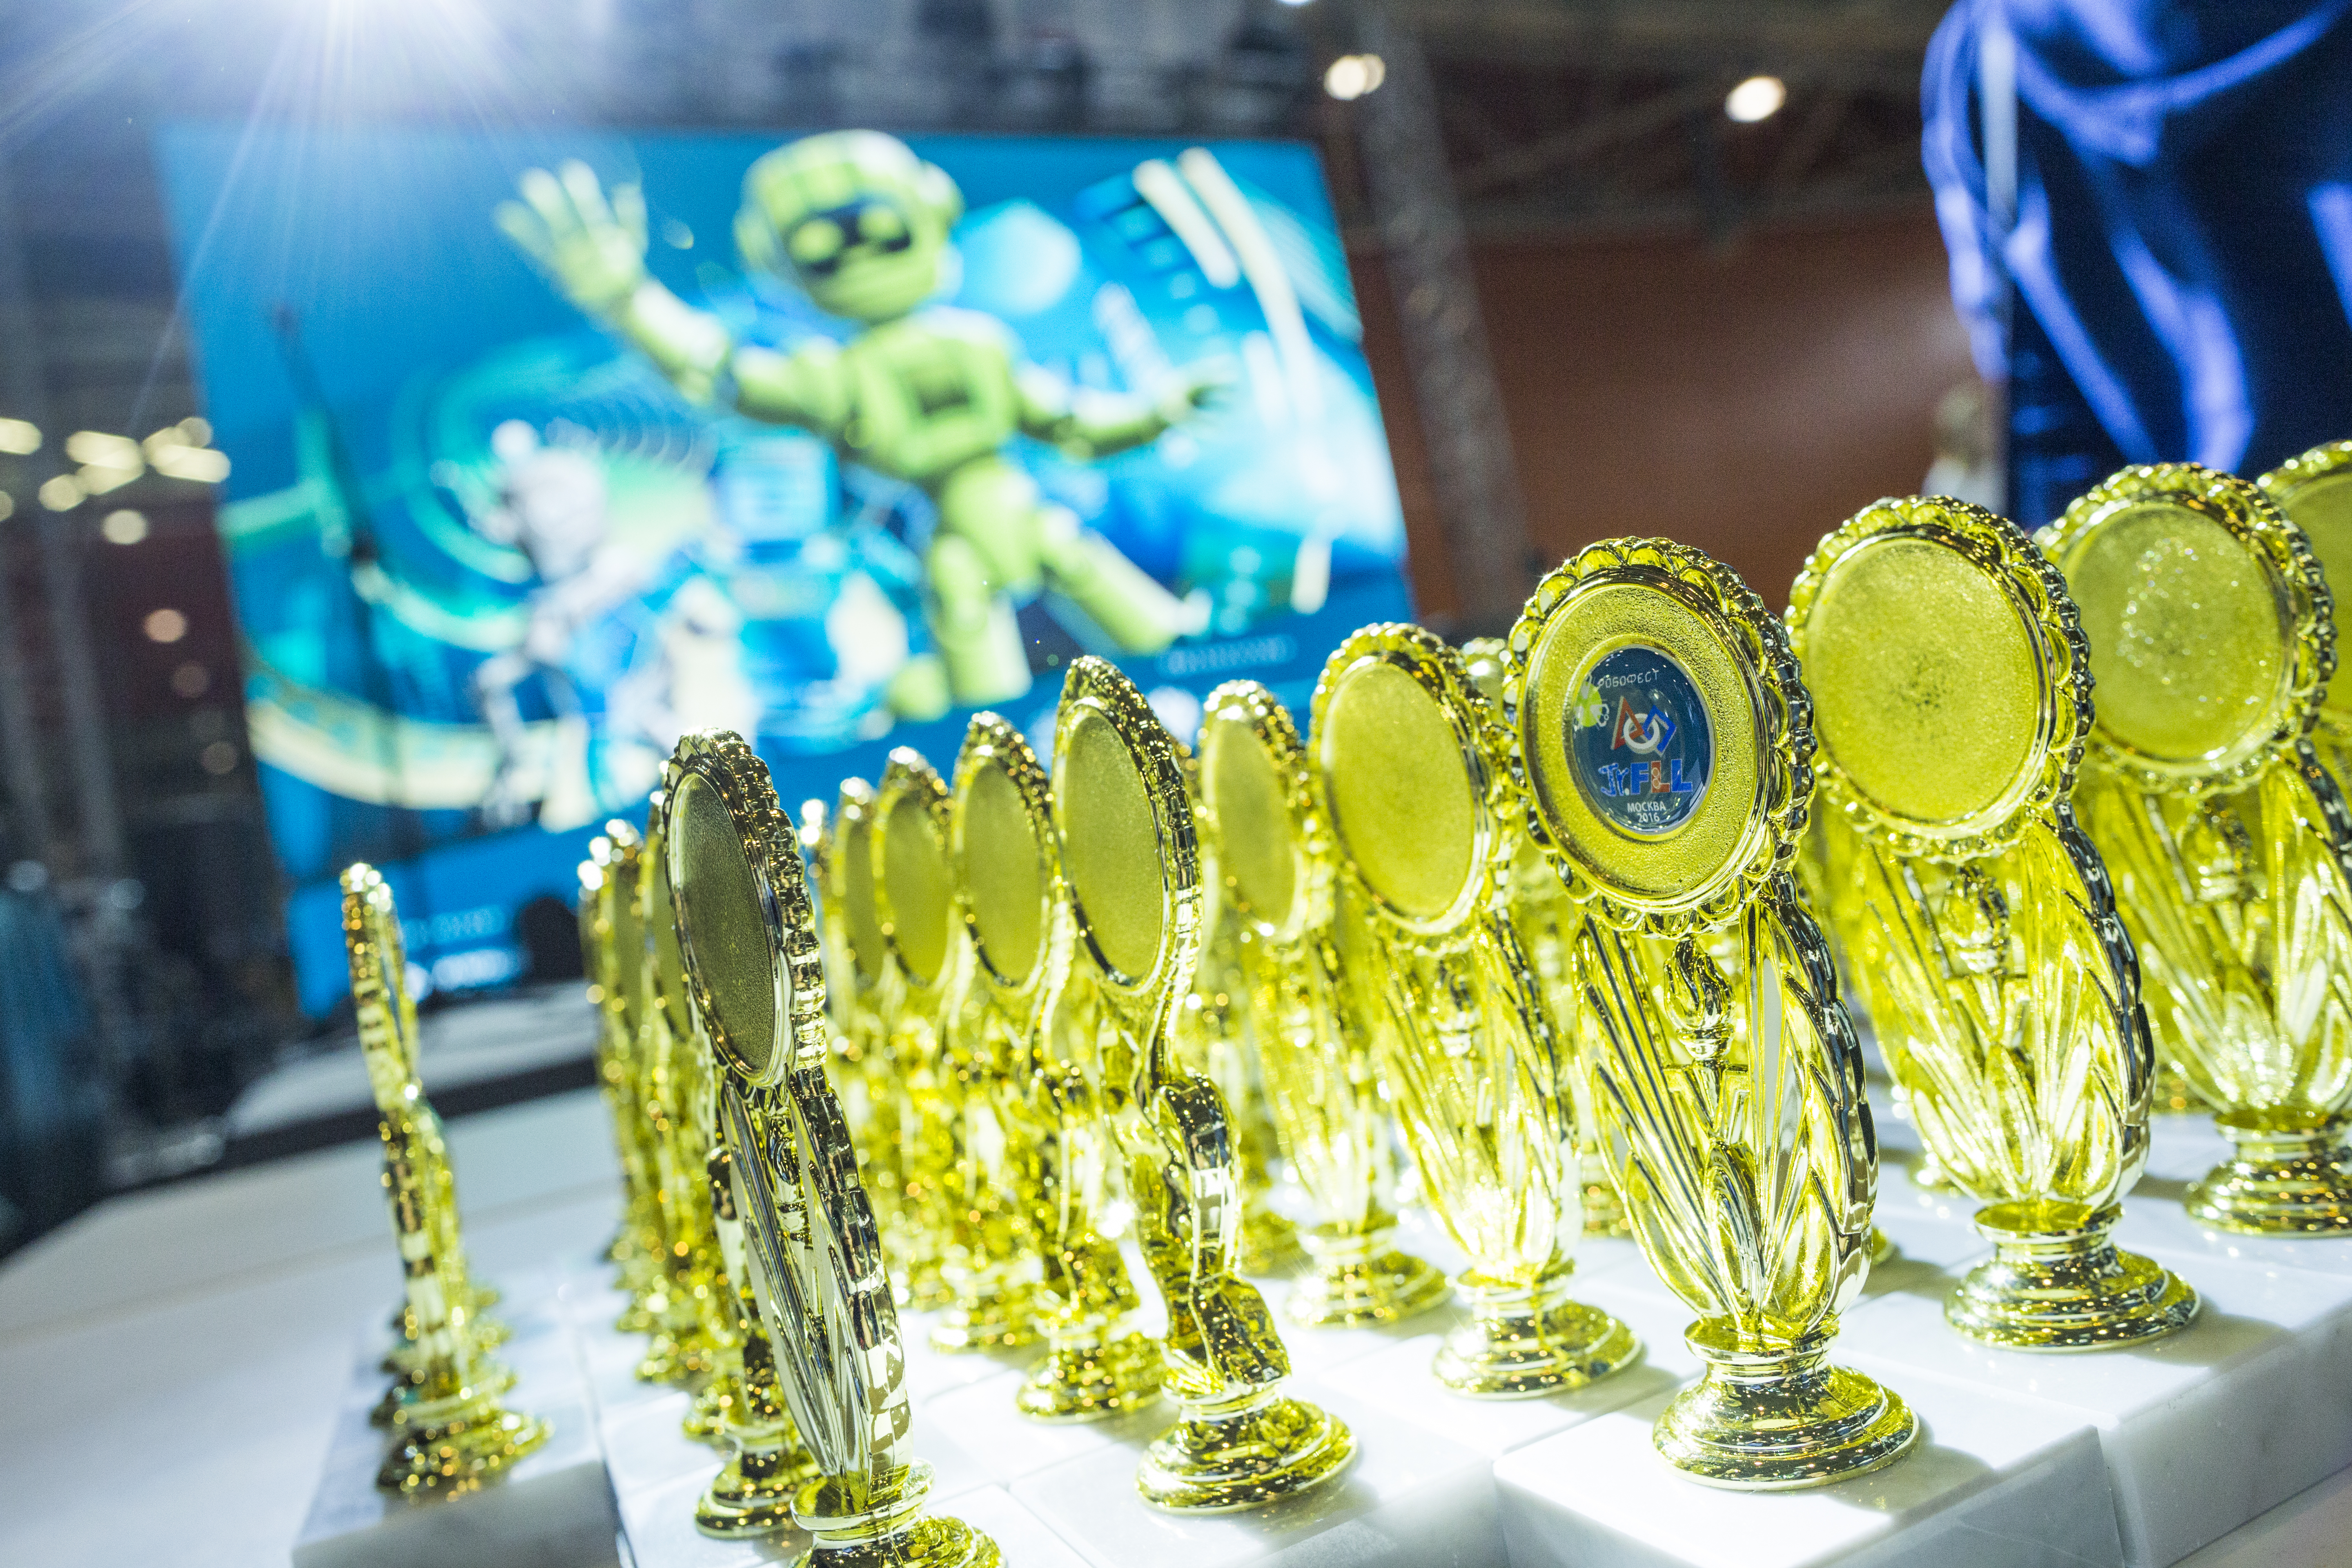 Moscow young robotics team sweeps RoboFest-2016